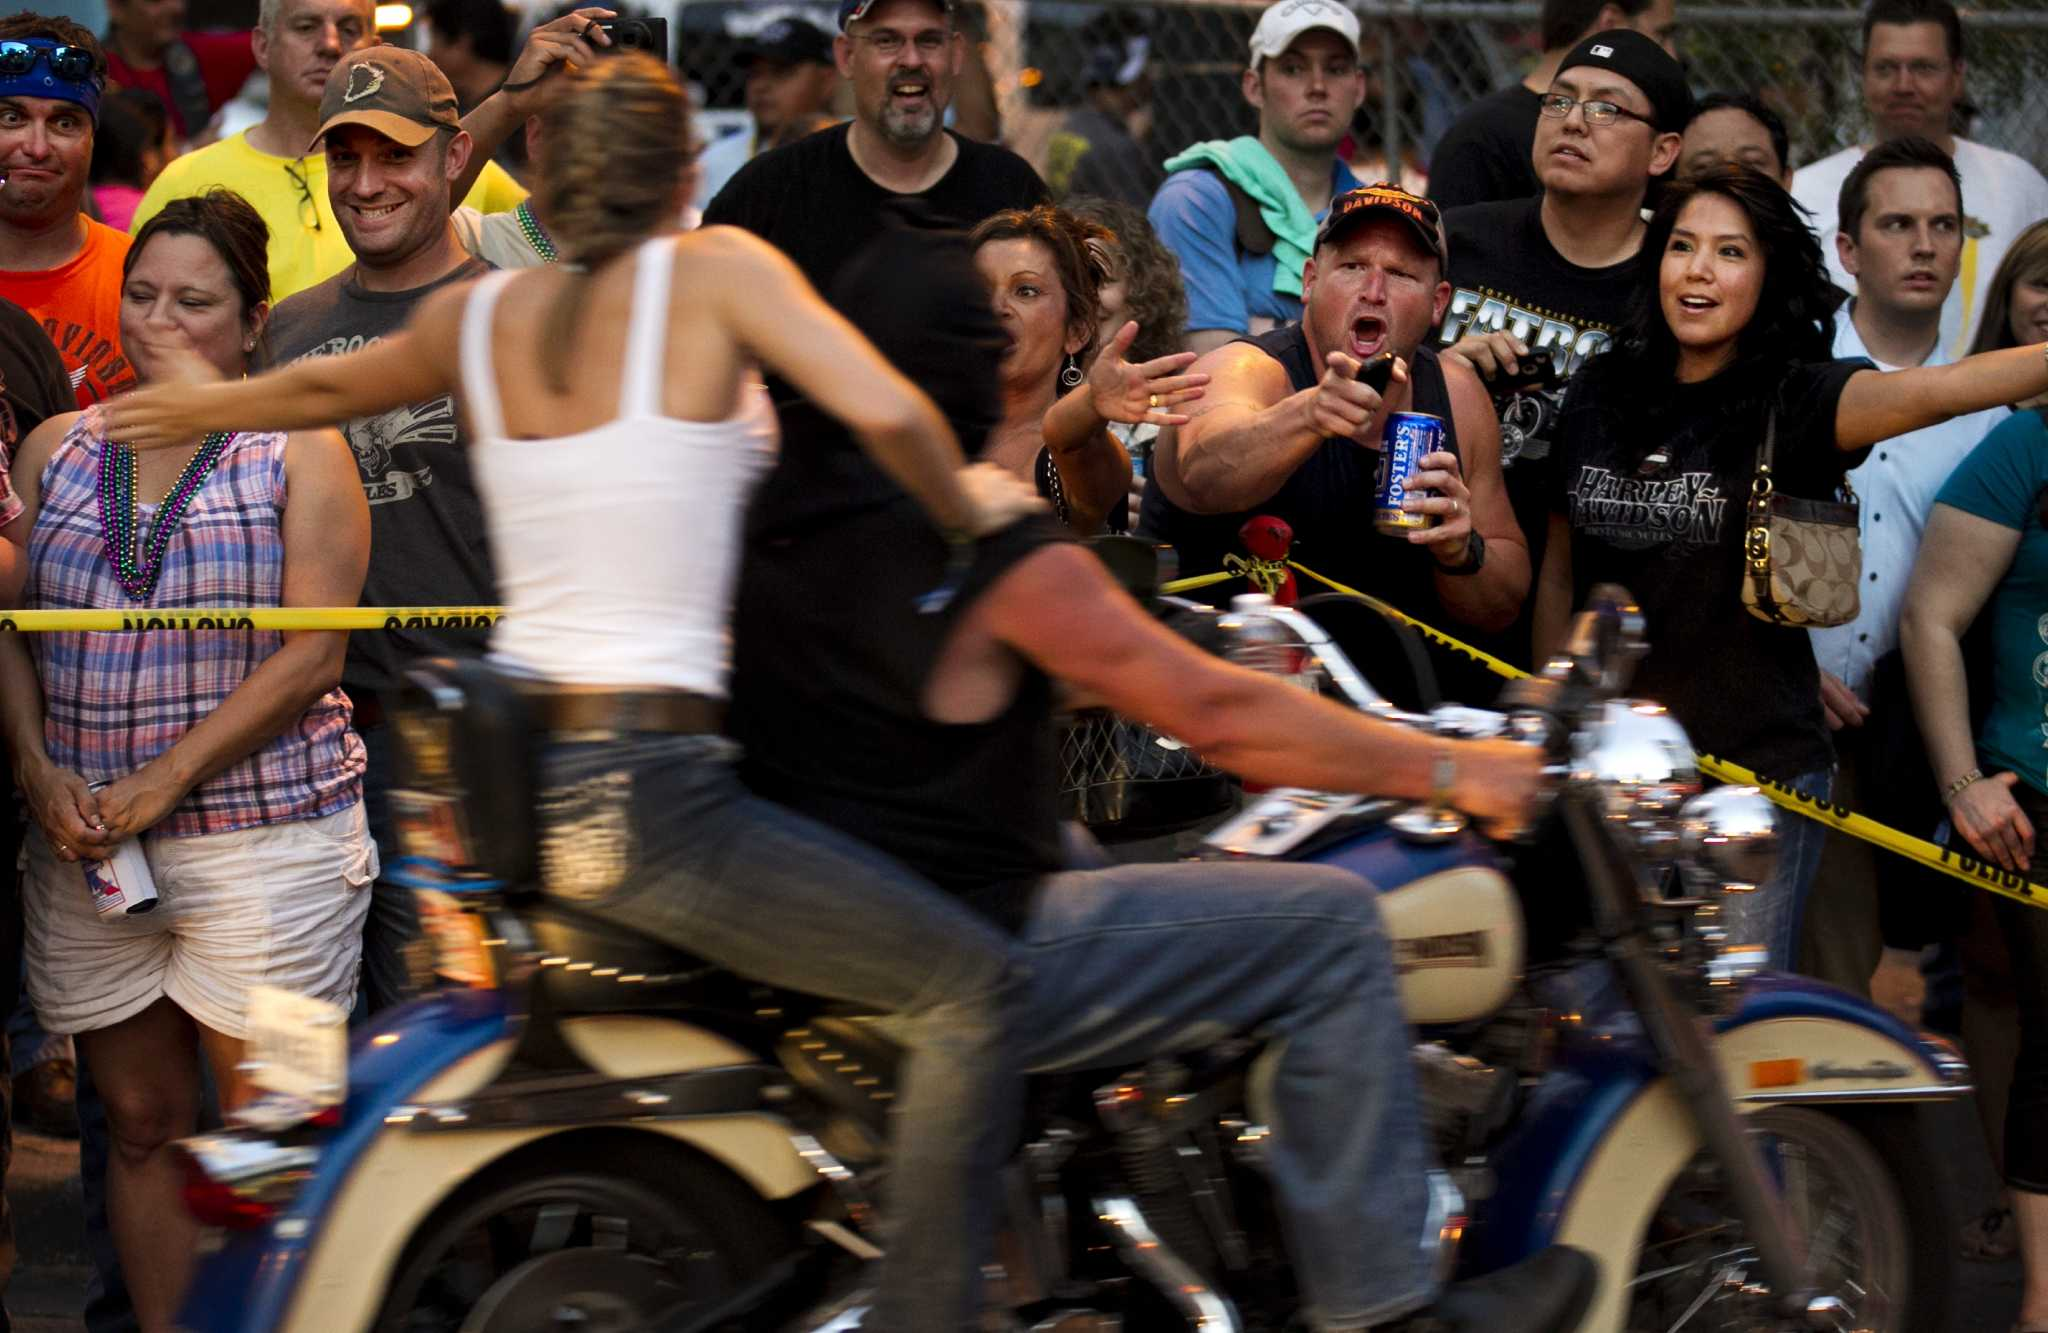 Austin Police To Have A Heavy Presence At Rot Rally Bringing 40 000 Bikers To Capital City San Antonio Express News